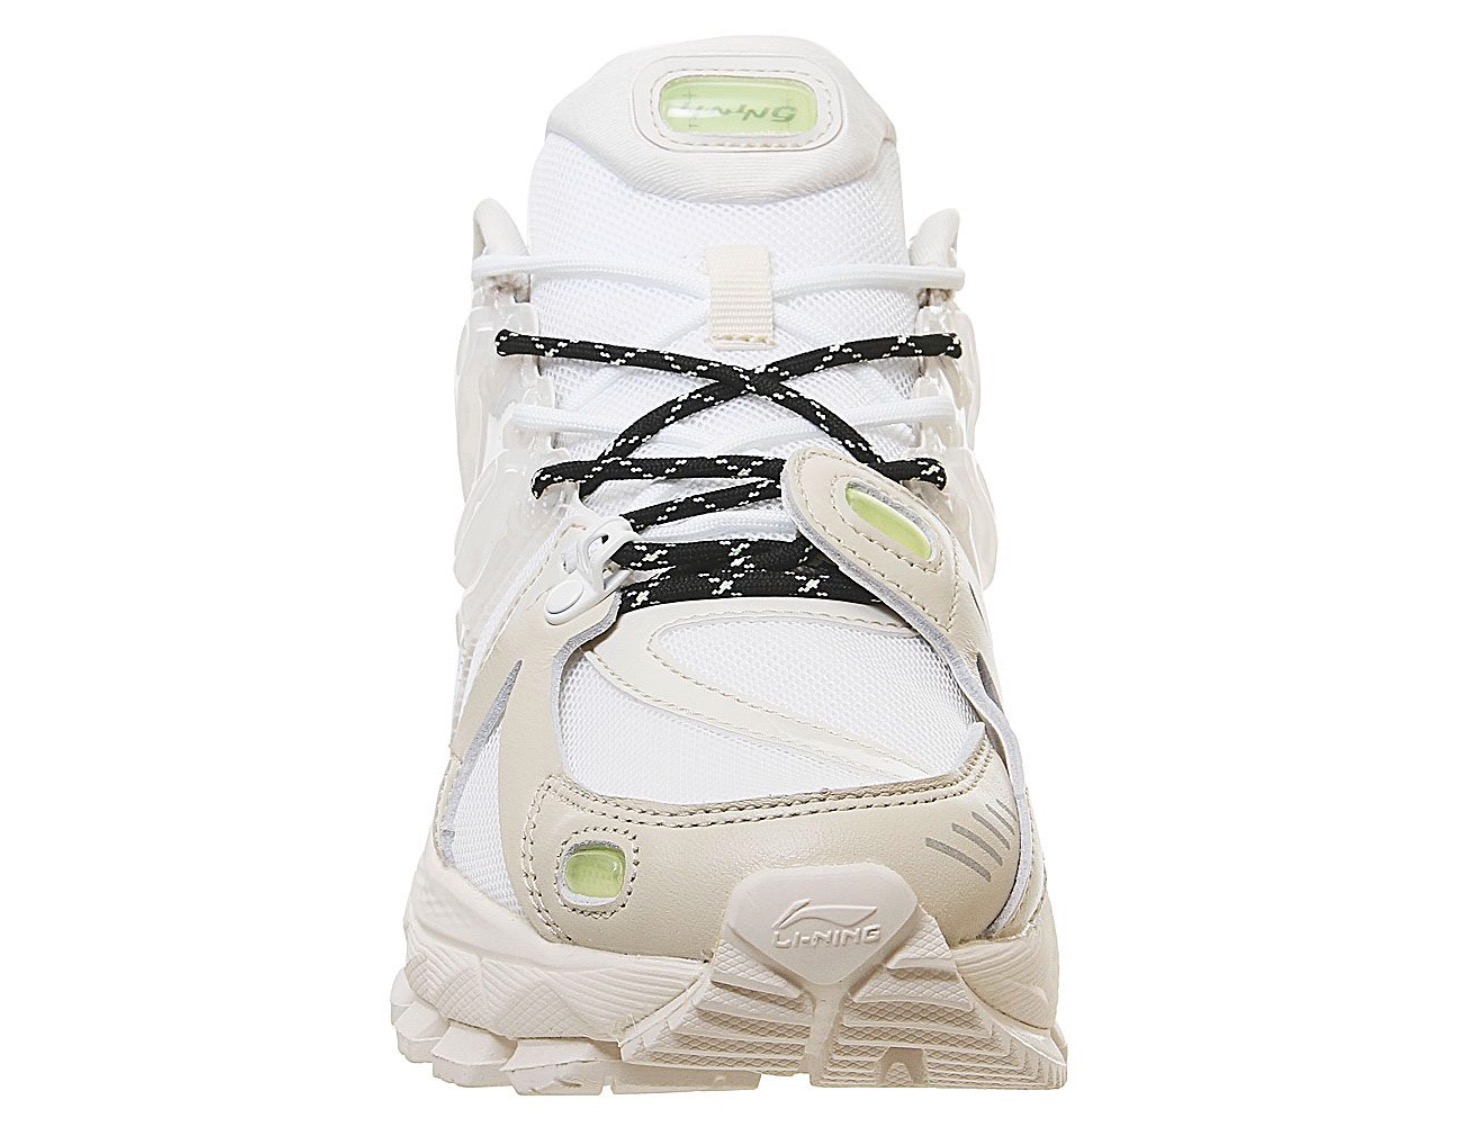 Li-Ning Furious Rider Ace 1.5 front white